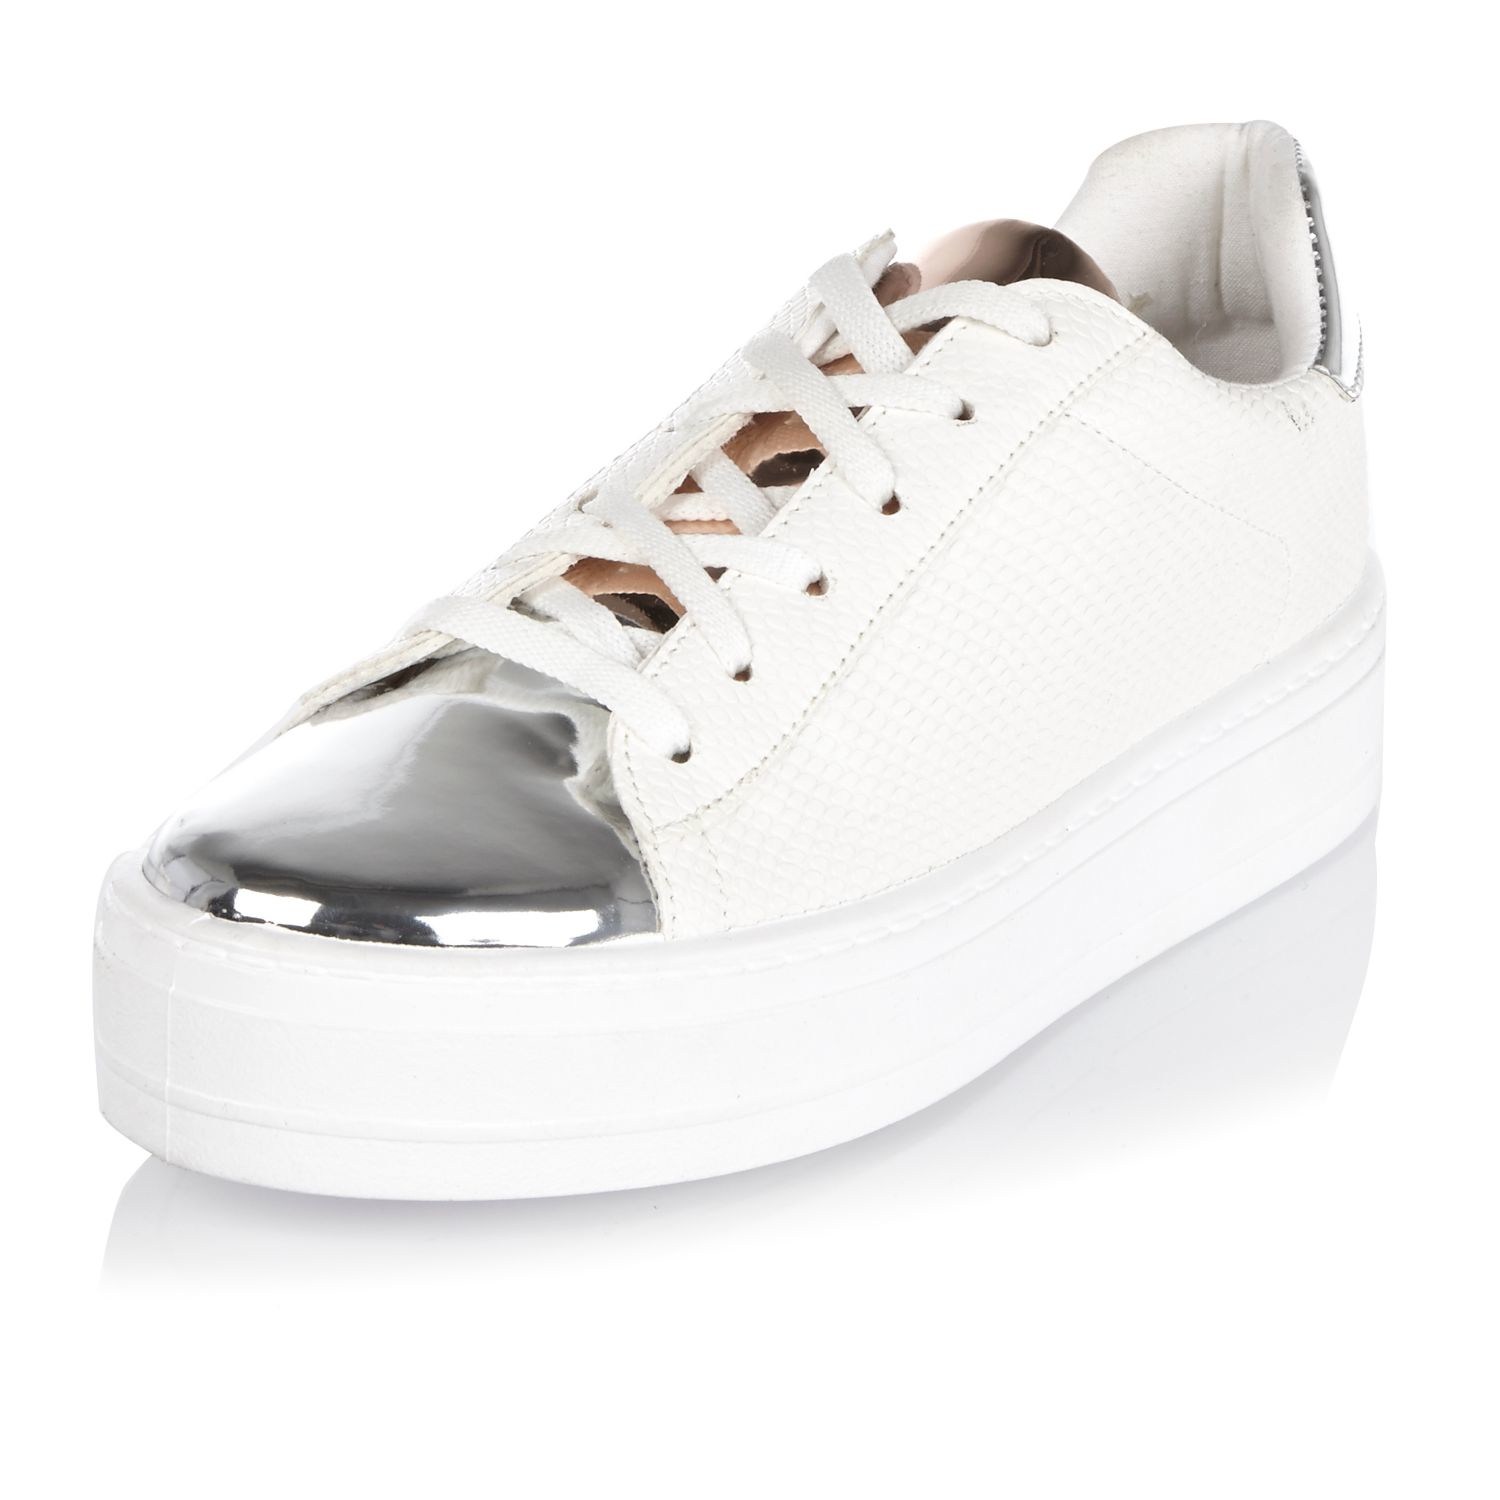 Free Shipping Purchase Womens White diamante trim plimsolls River Island Official Site Cheap Online Shop Offer Cheap Online Popular For Sale o3vIEl